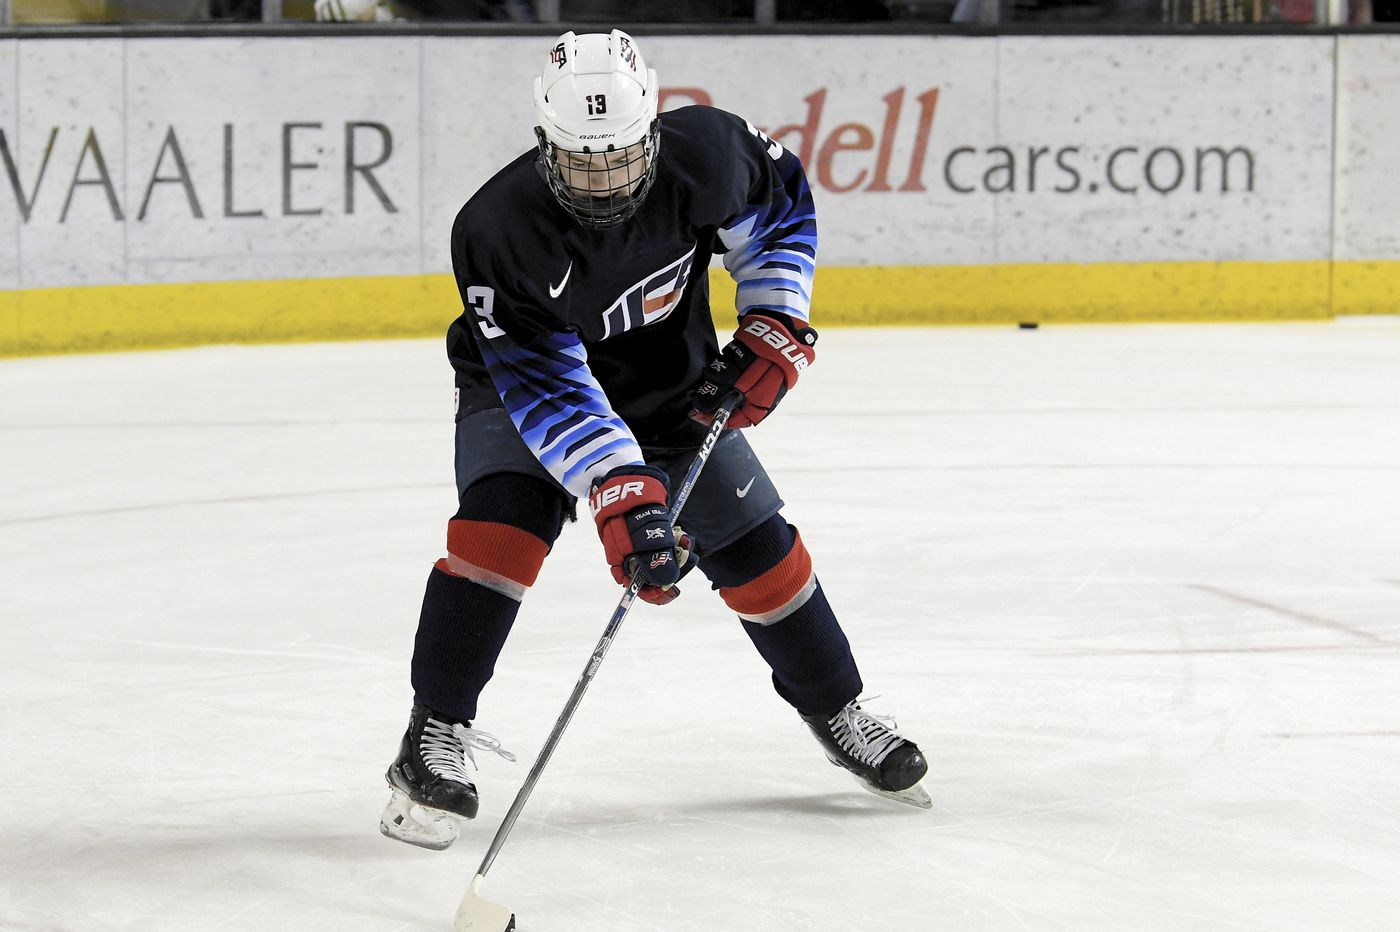 5-foot-7 Cole Caufield could make an NHL impact, maybe for Flyers   Sam Carchidi